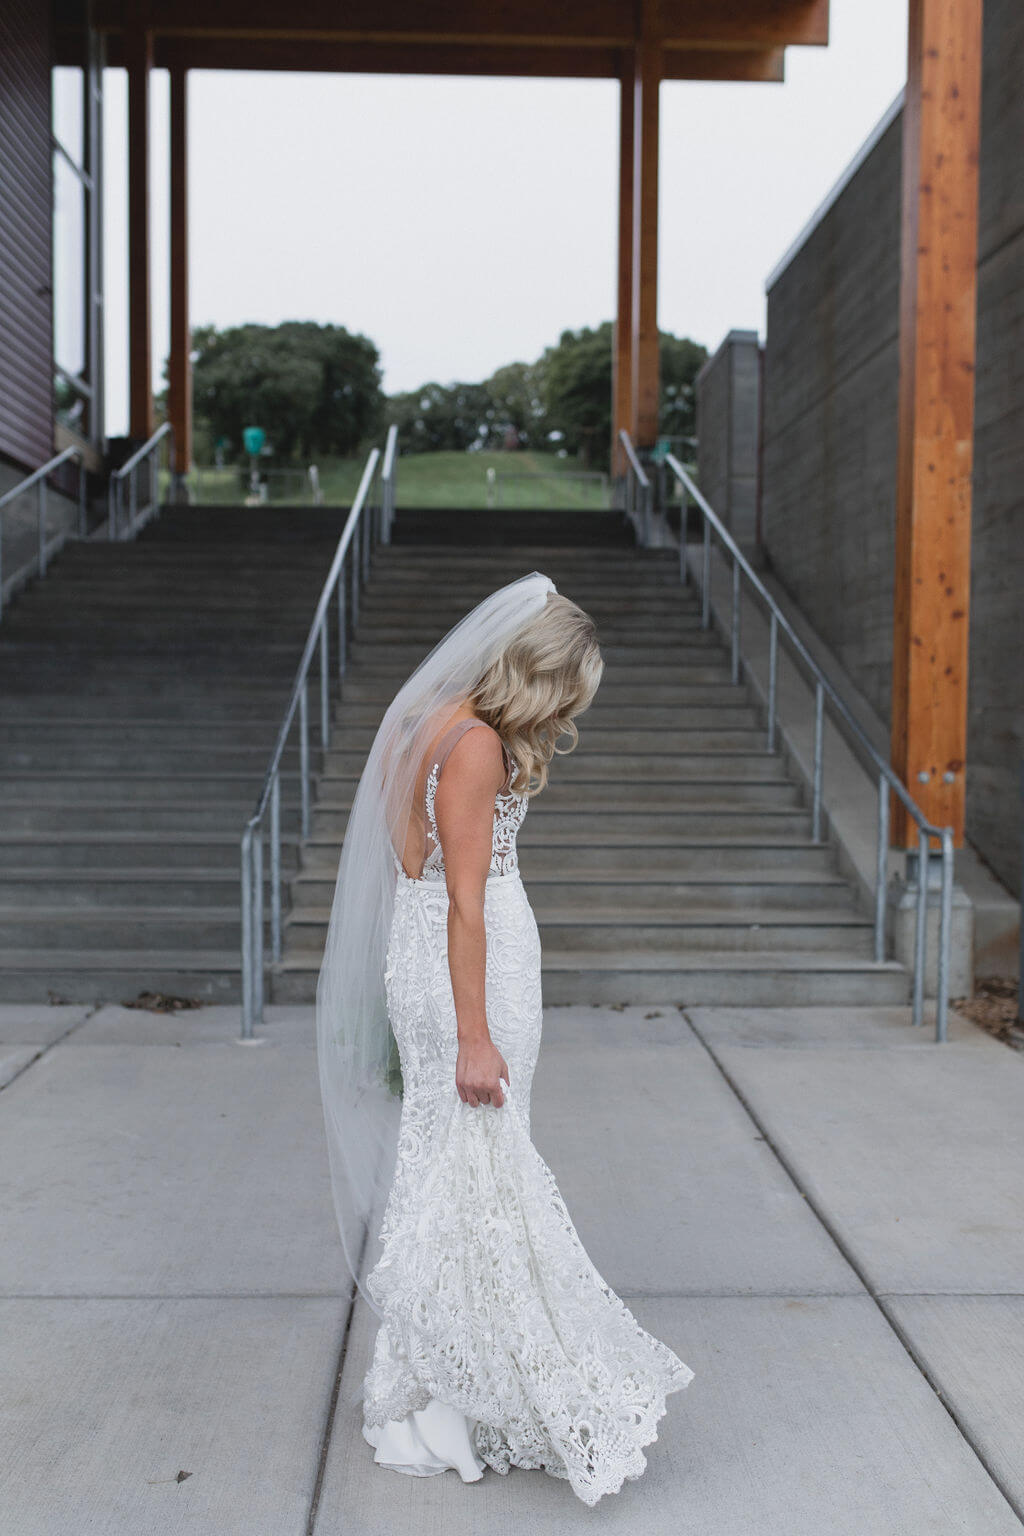 Ashley and Tom | Mariah Brink Photo | Hyland Hills Wedding | Sixpence MN wedding planner | bride in front of stairs